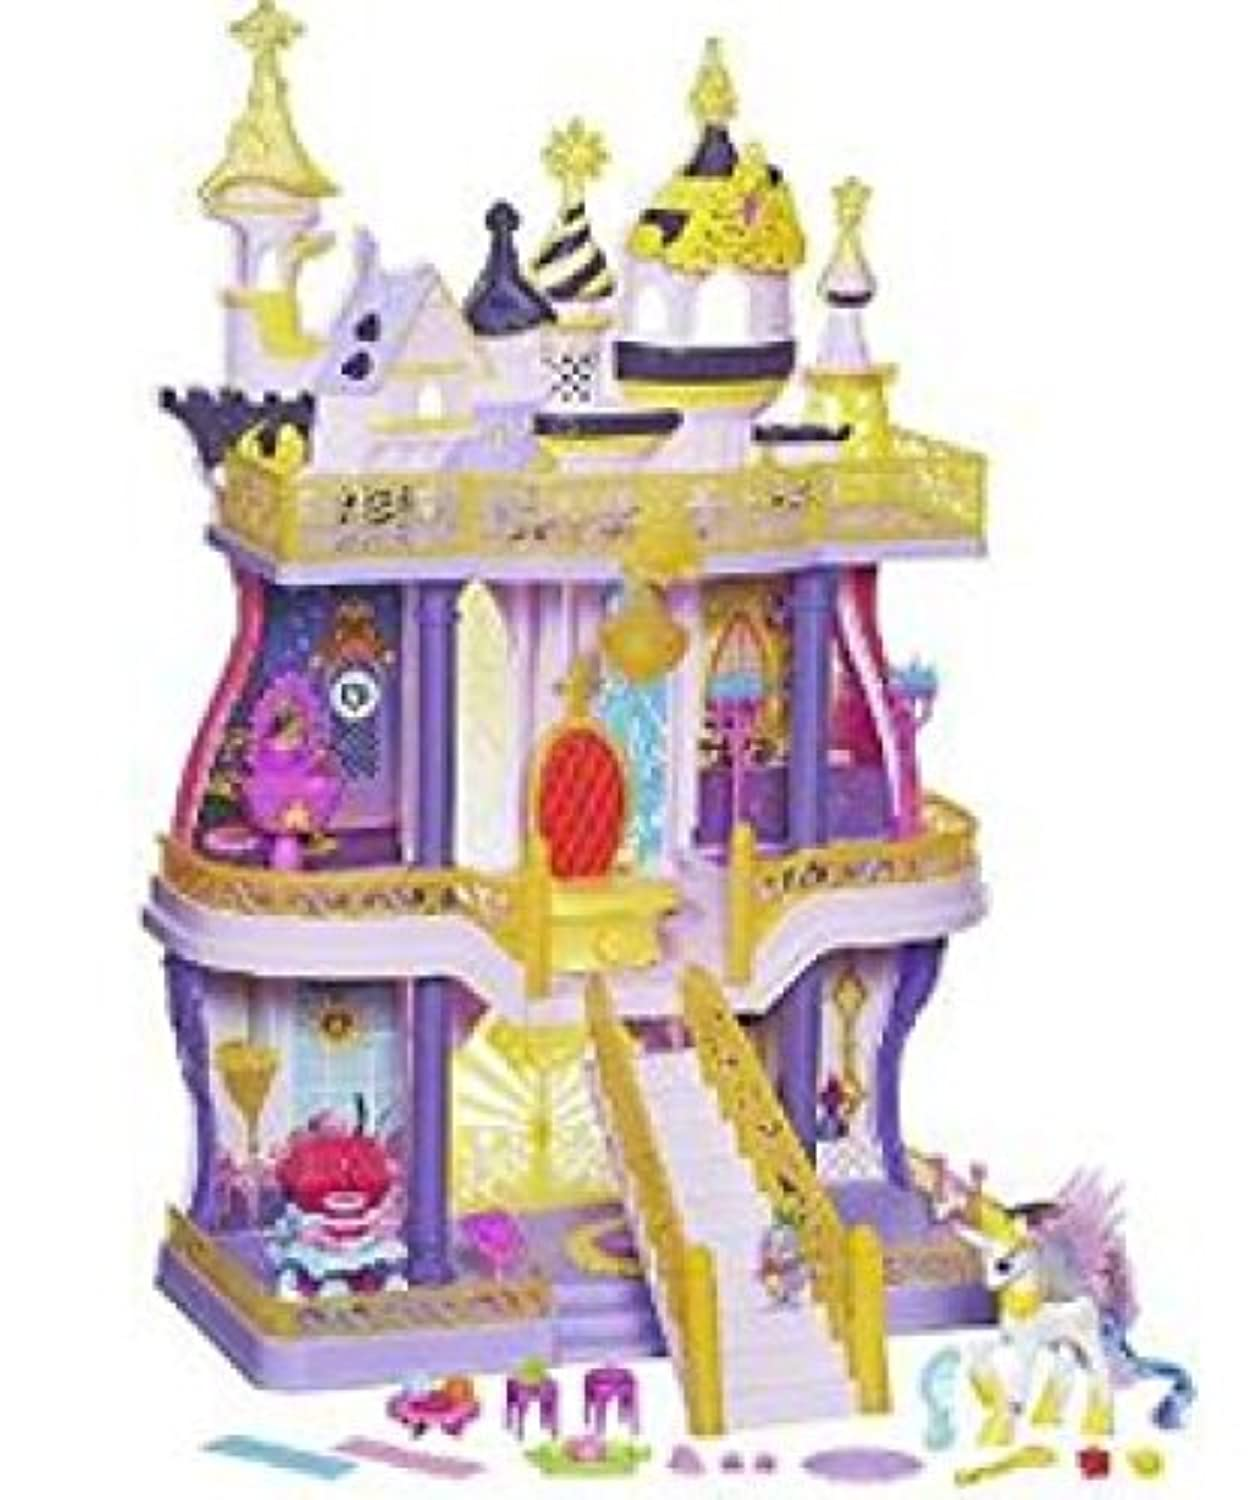 My Little Pony Cutie Mark Magic Canterlot Castle Playset [並行輸入品]